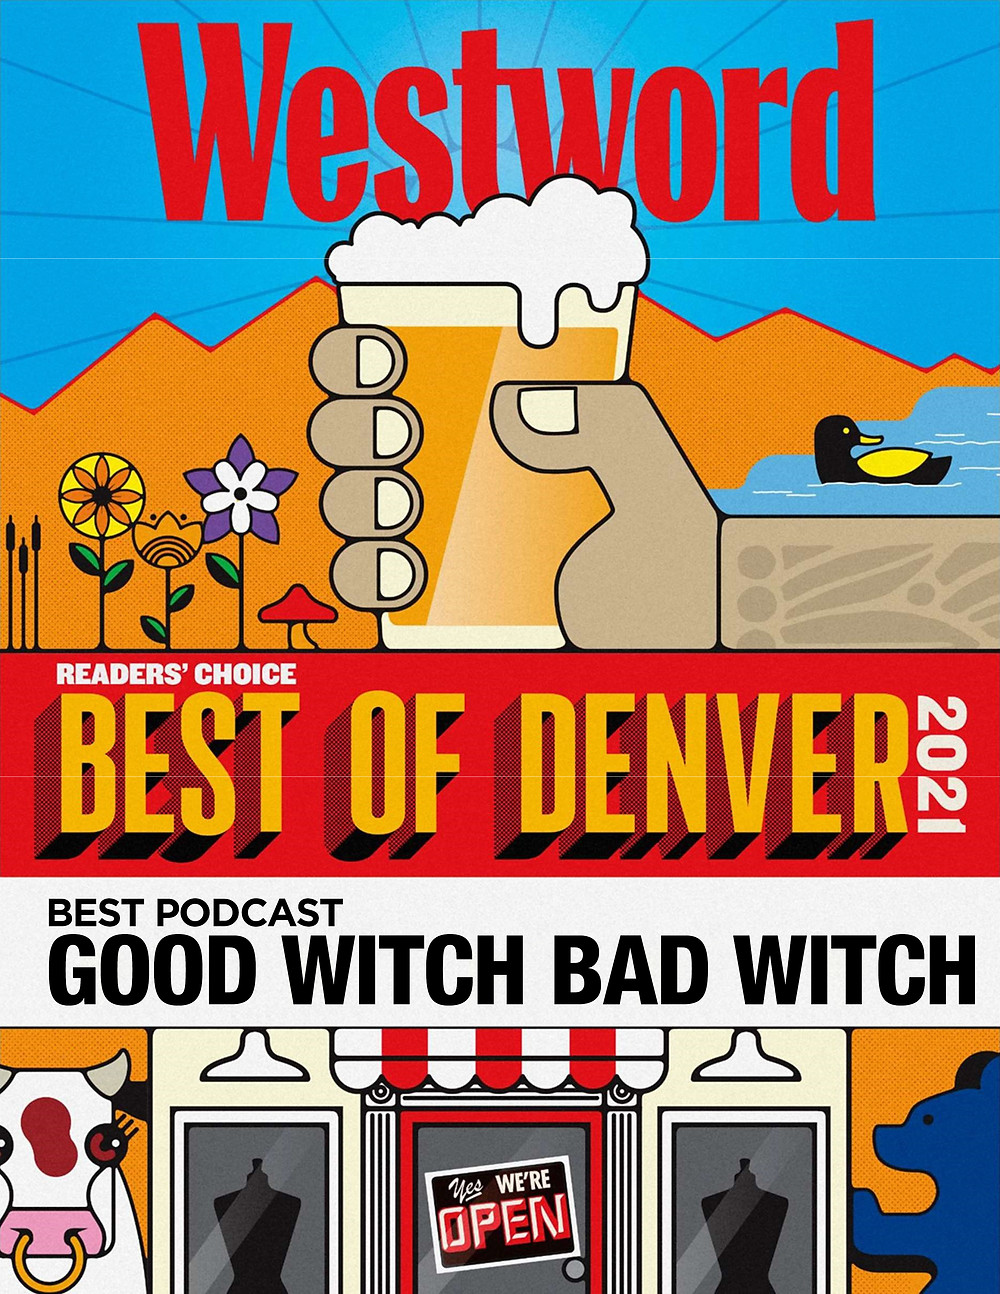 Best Podcast in Denver! Good Witch Bad Witch voted by Westword Readers